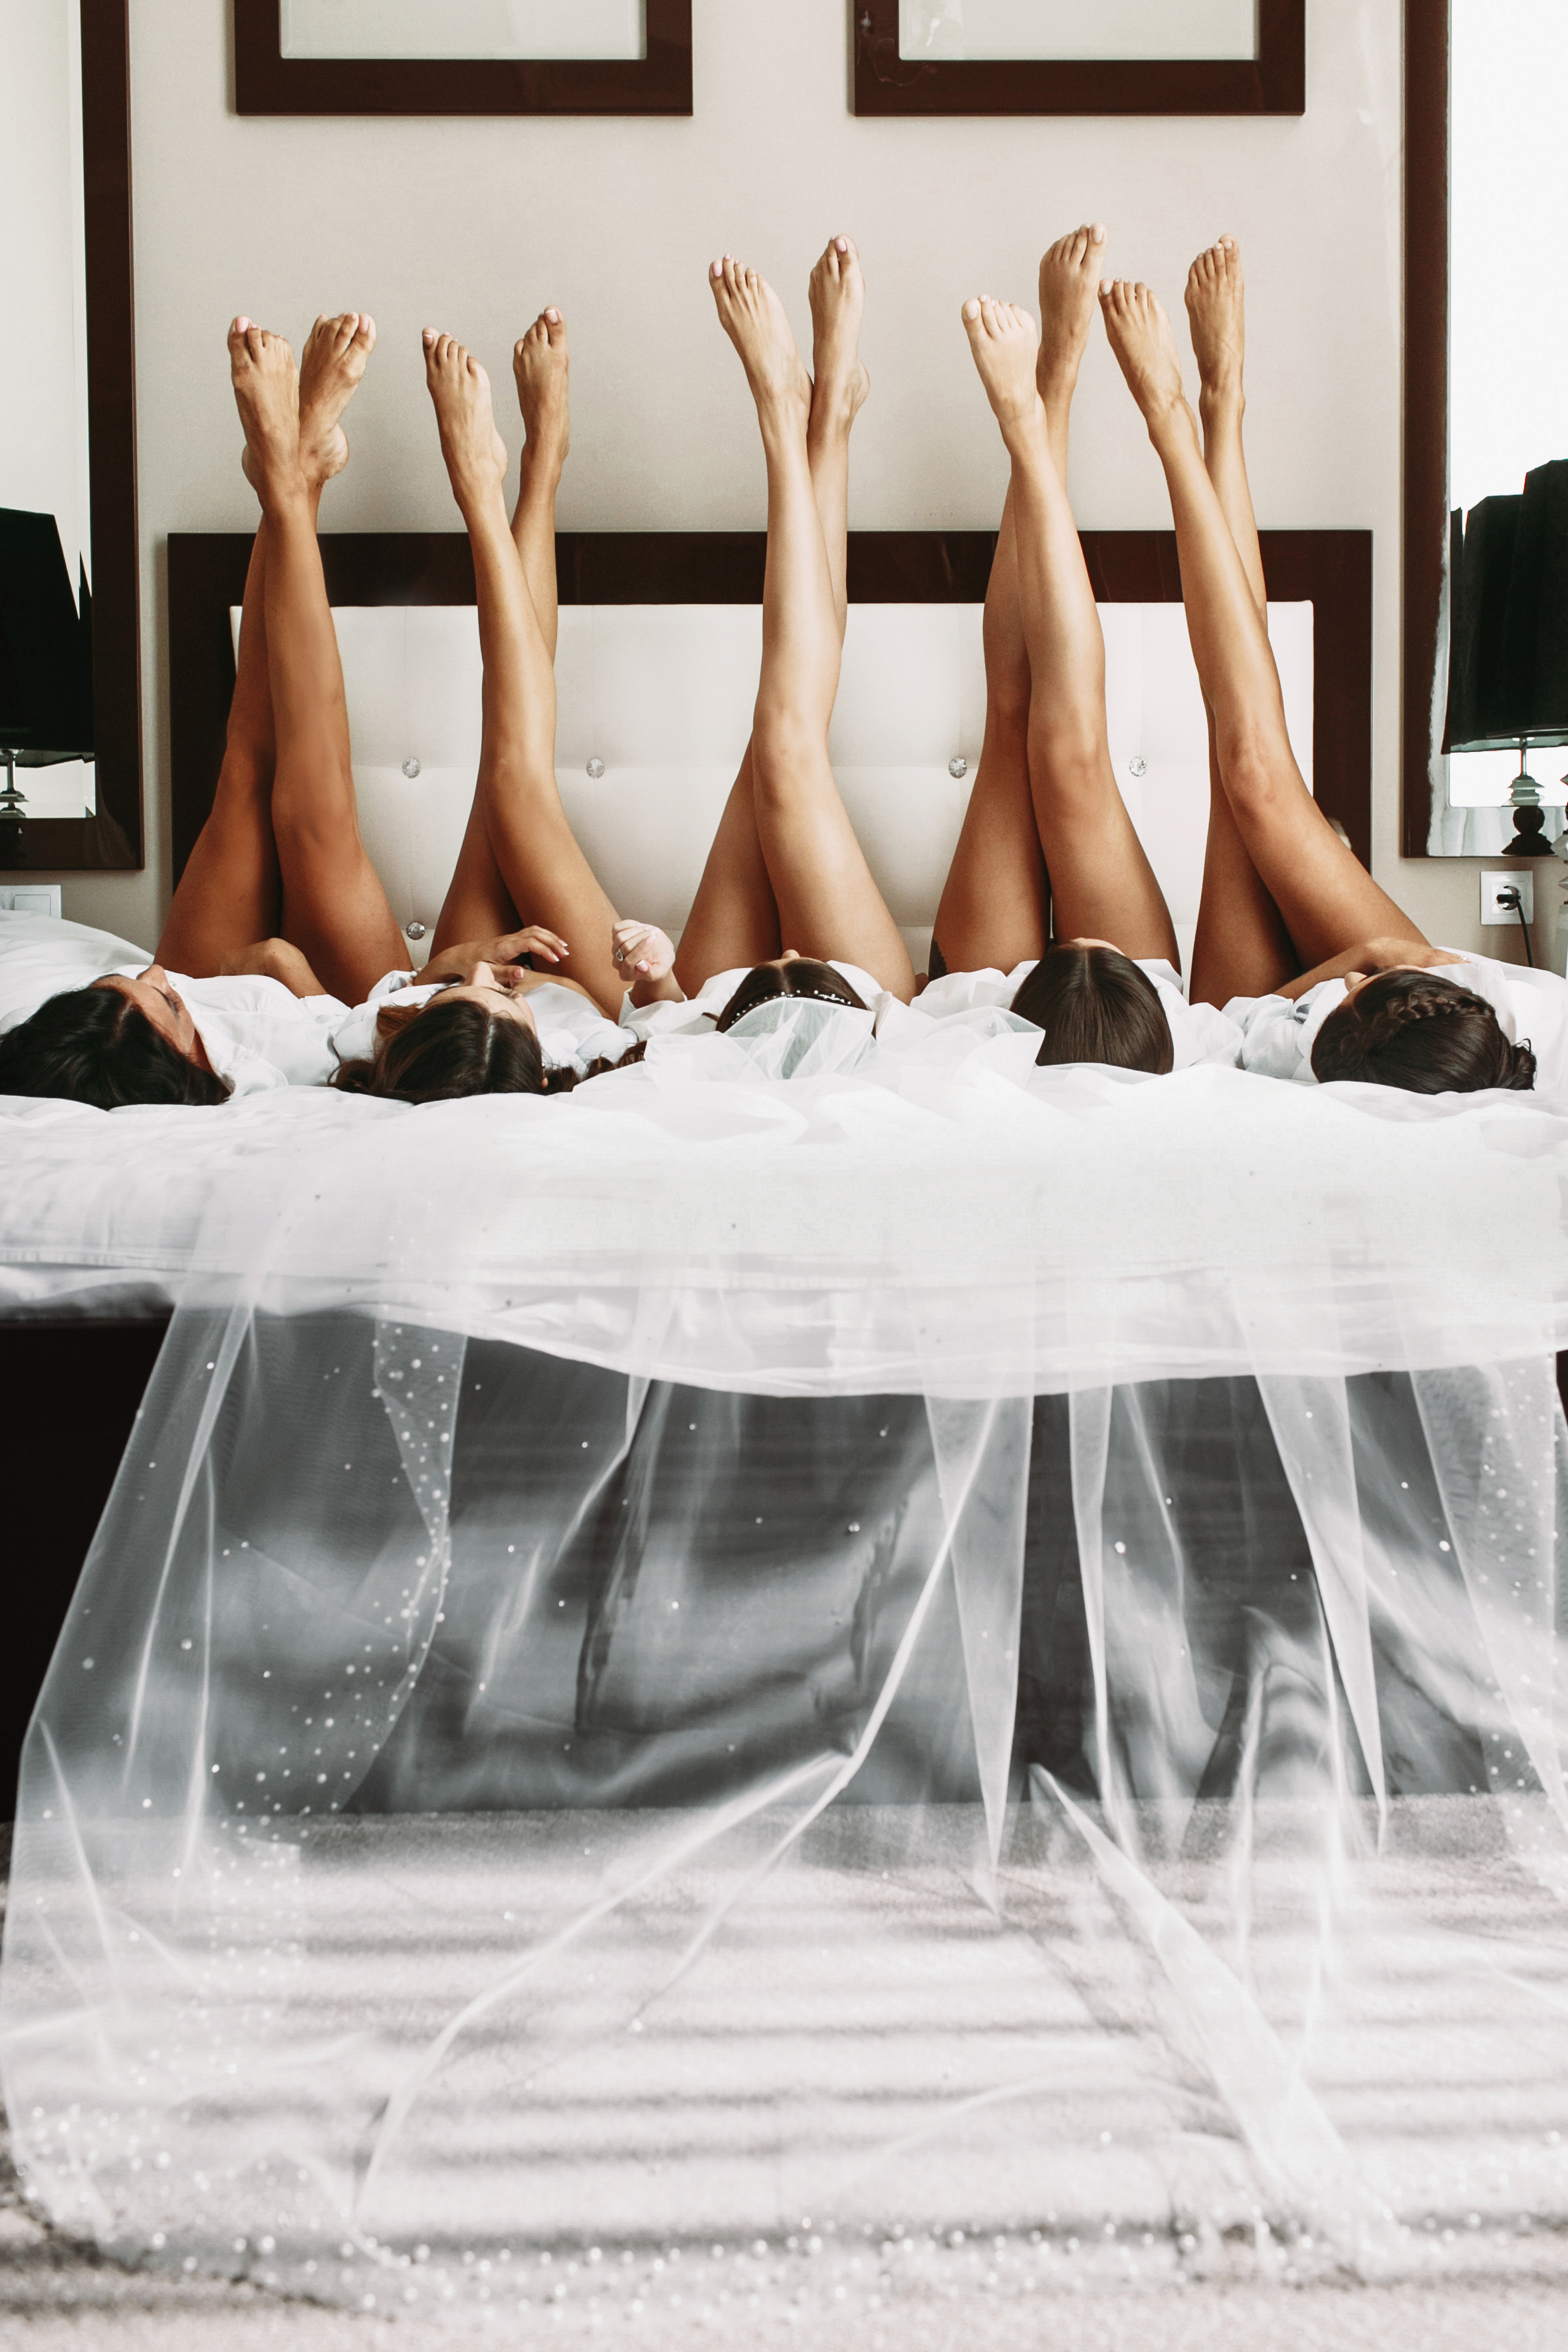 We offer full service airbrush spray tanning for wedding parties and events for yourself or an entire group (bachelorette or bridal party) at the location of your choice. Spray tanning services are available for every step of your wedding; including the engagement party, photos, bachelorette party, wedding day, and even the honeymoon.